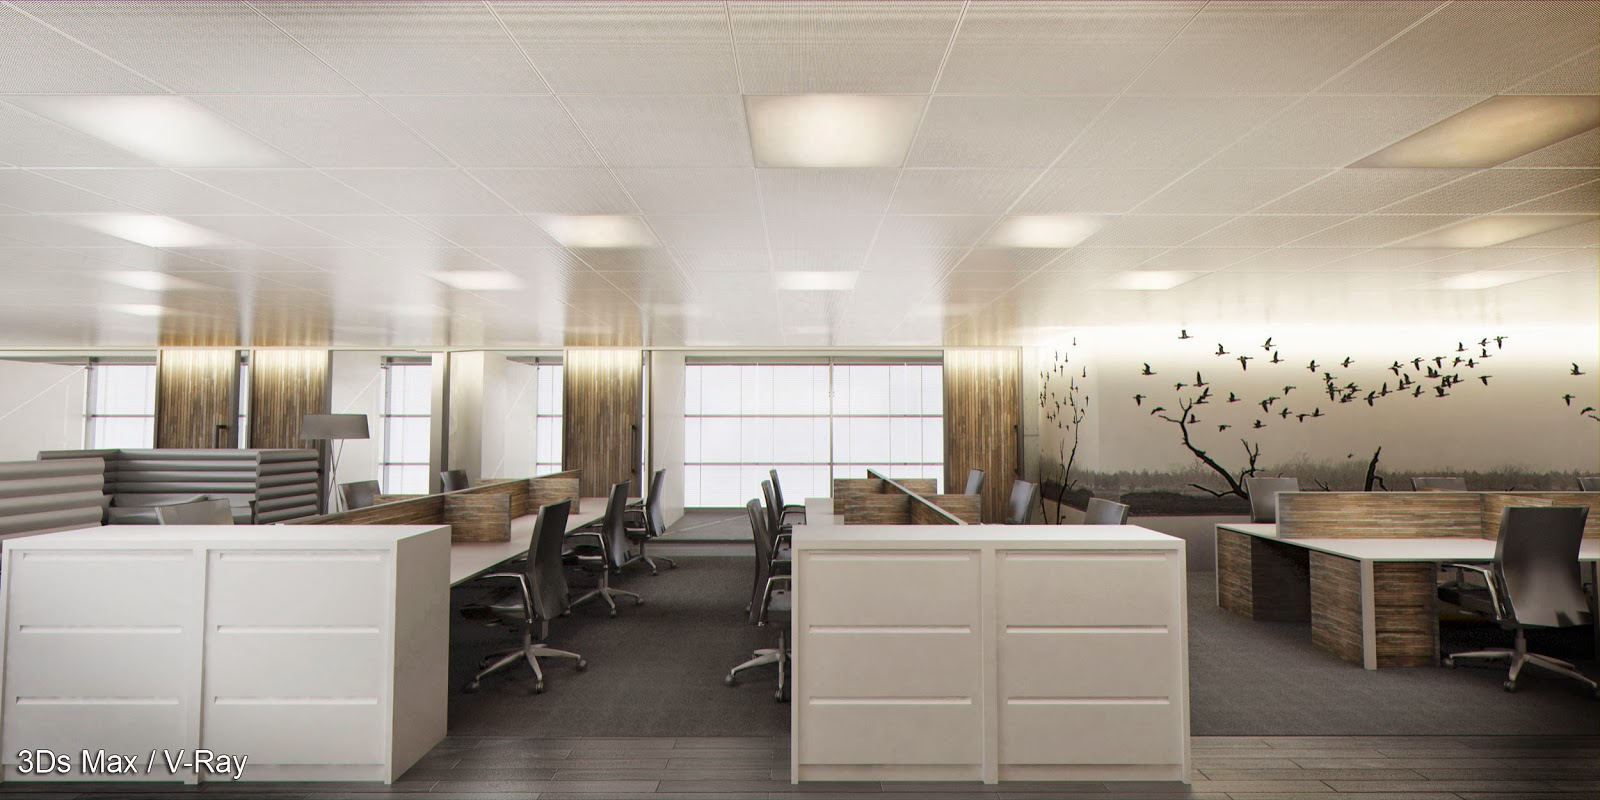 Viz tech support for companies and artists 3ds max 3d for Office design 3d